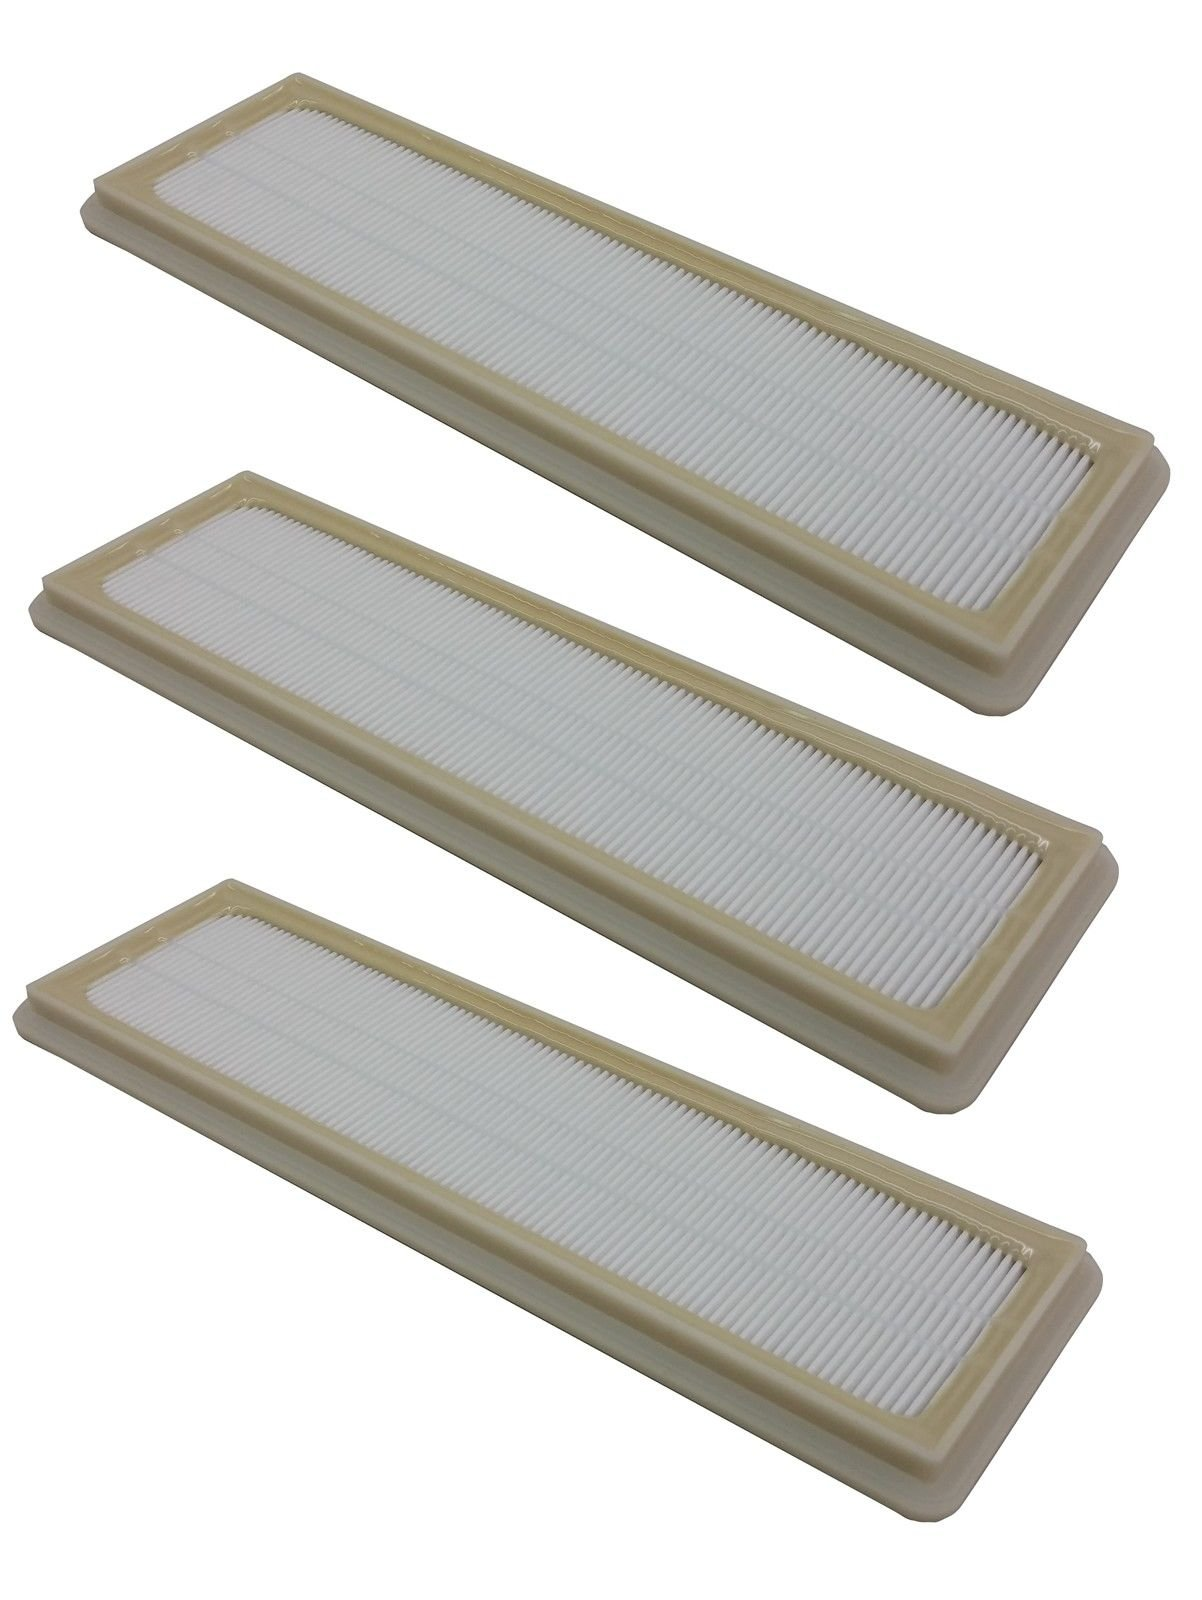 MAYITOP 3Pack Filter for Hoover Self Propelled Windtunnel Final 40110001, 40120101, 43613021